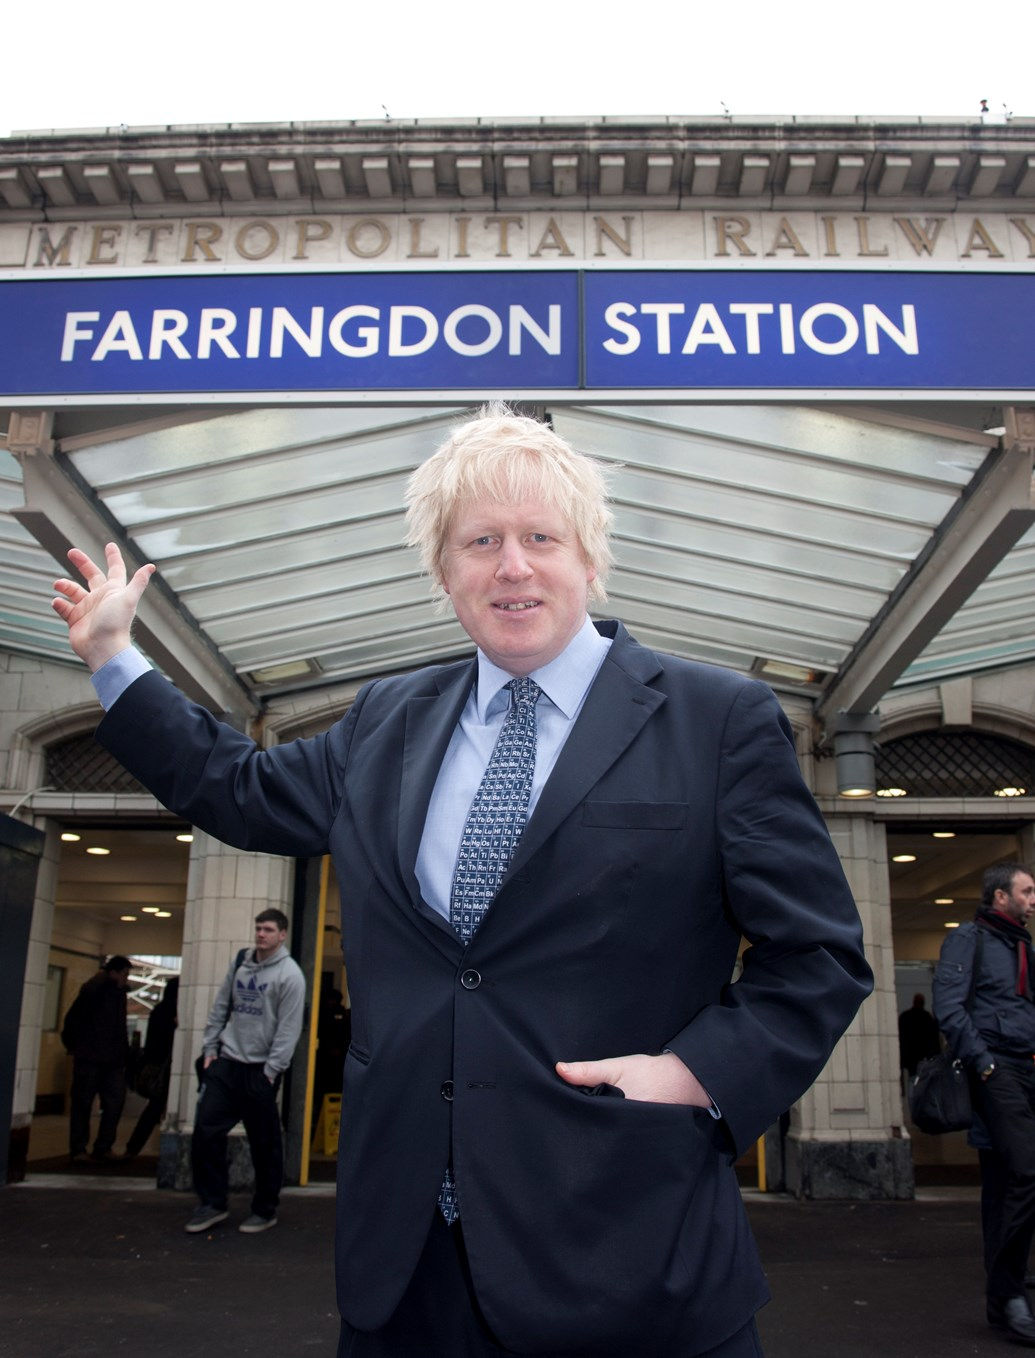 FARRINGDON STATION STEPS CLOSER TO BECOMING LONDON'S NEWEST TRANSPORT HUB: Boris Johnson at Farringdon station